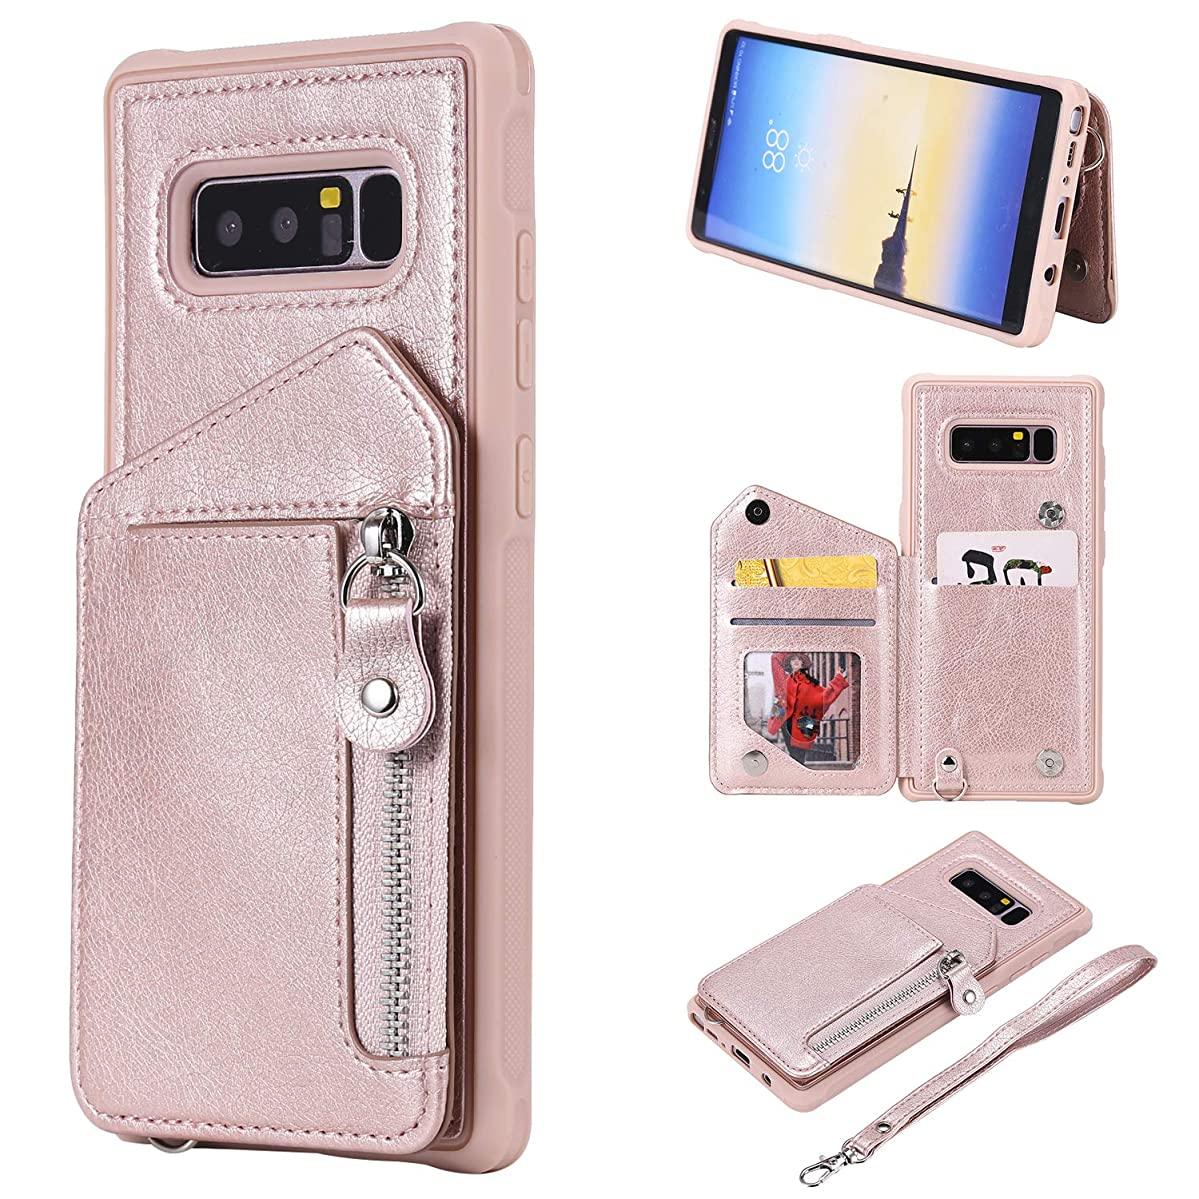 DAMONDY Case for Galaxy Note 8, Zipper Wallet Purse Card Holders Design Cover Soft Shockproof Bumper Folio Flip Leather Kickstand Clasp Wrist Strap Case for Samsung Galaxy Note 8 (2017)-Rose Gold